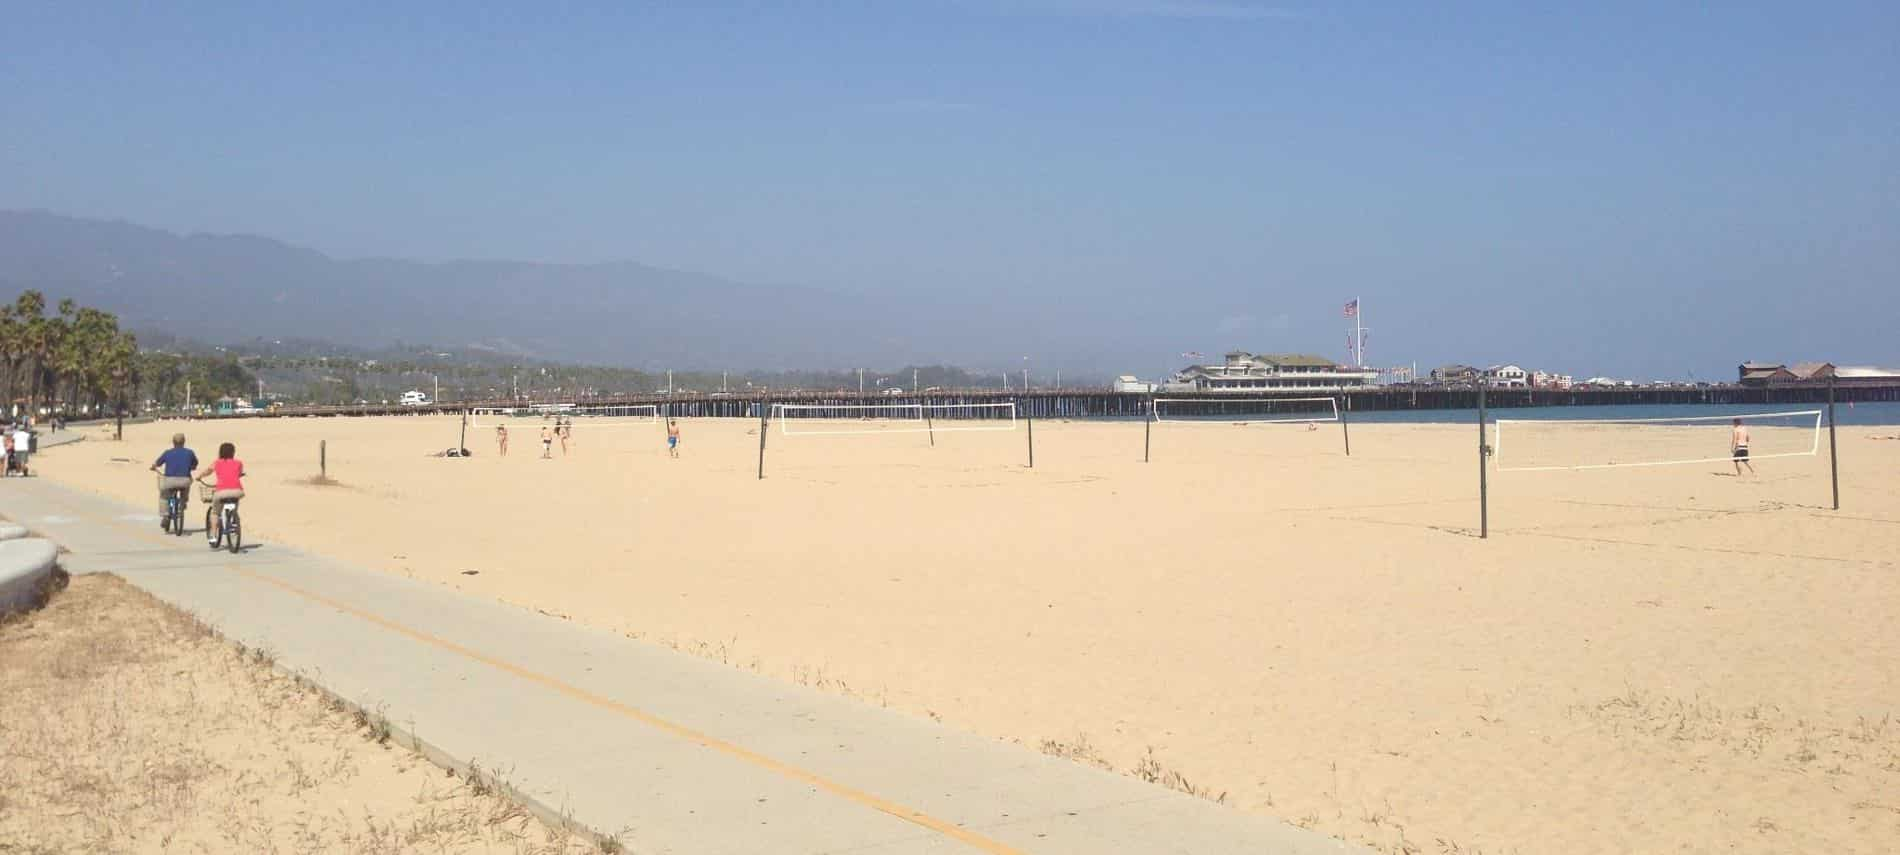 People riding bikes along a sandy beach with volleyball nets surrounded by mountains